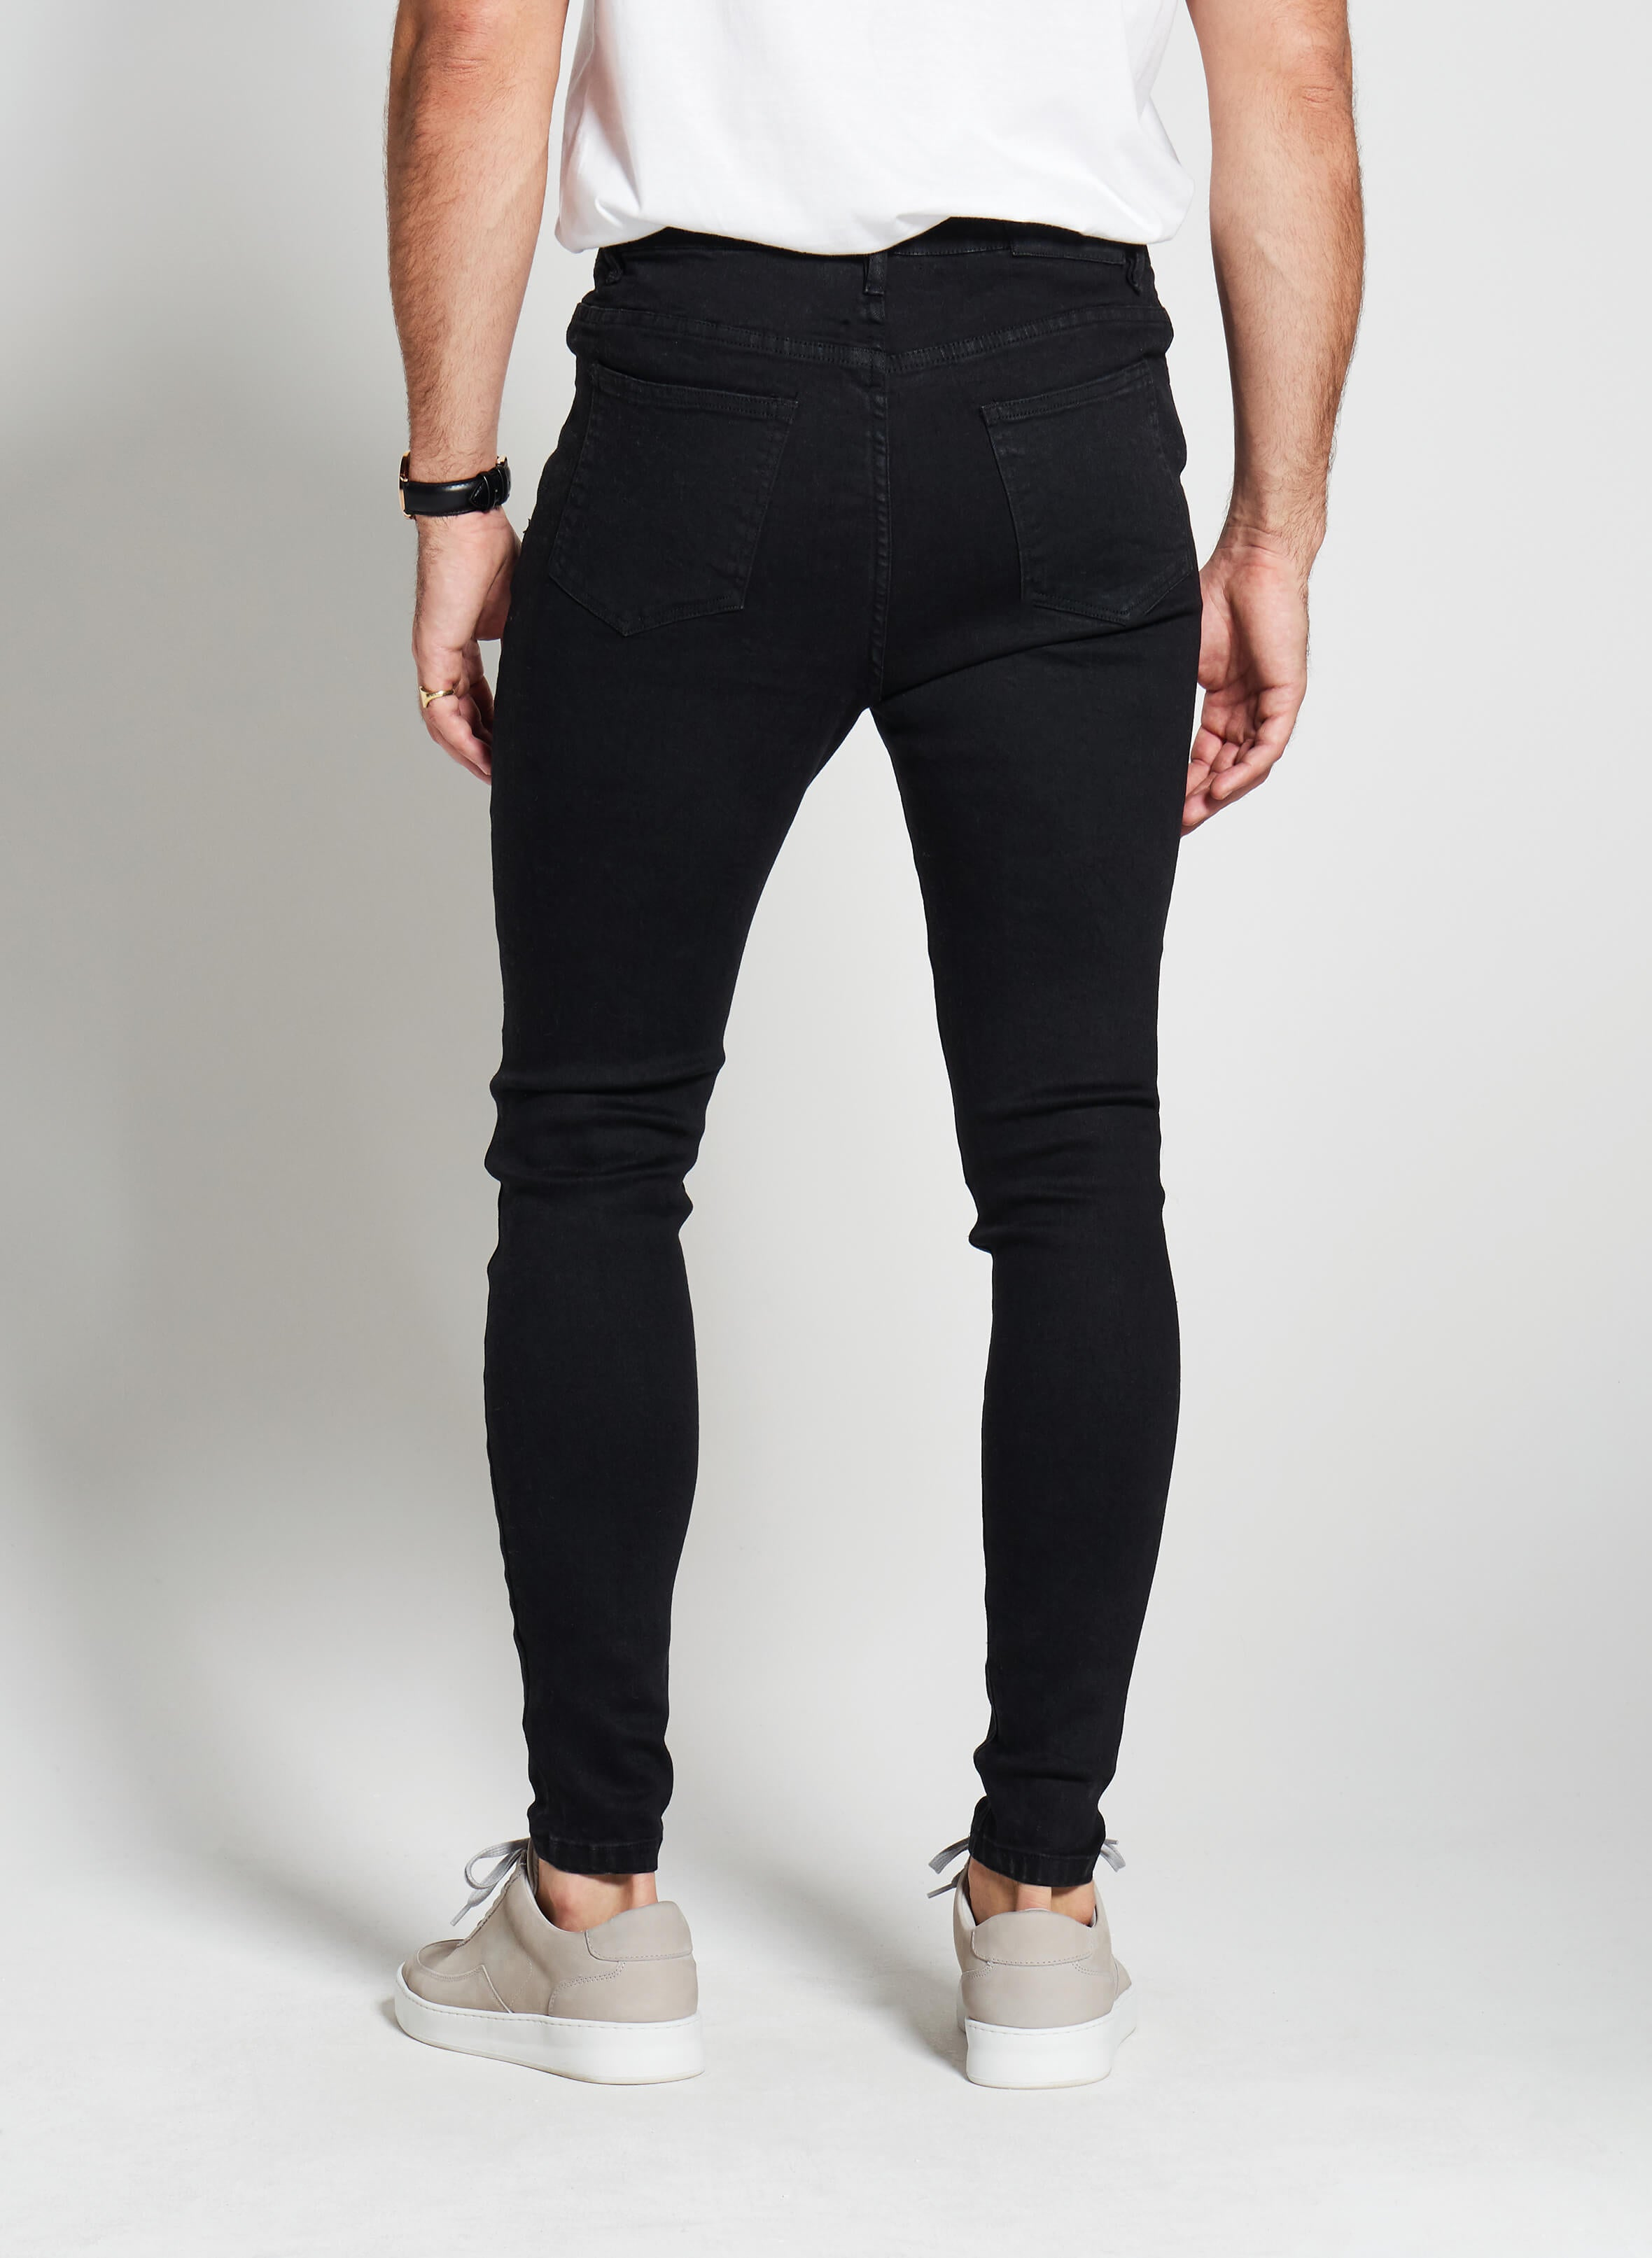 Denim Only® Spray On Jeans - Distressed Black - Spray On